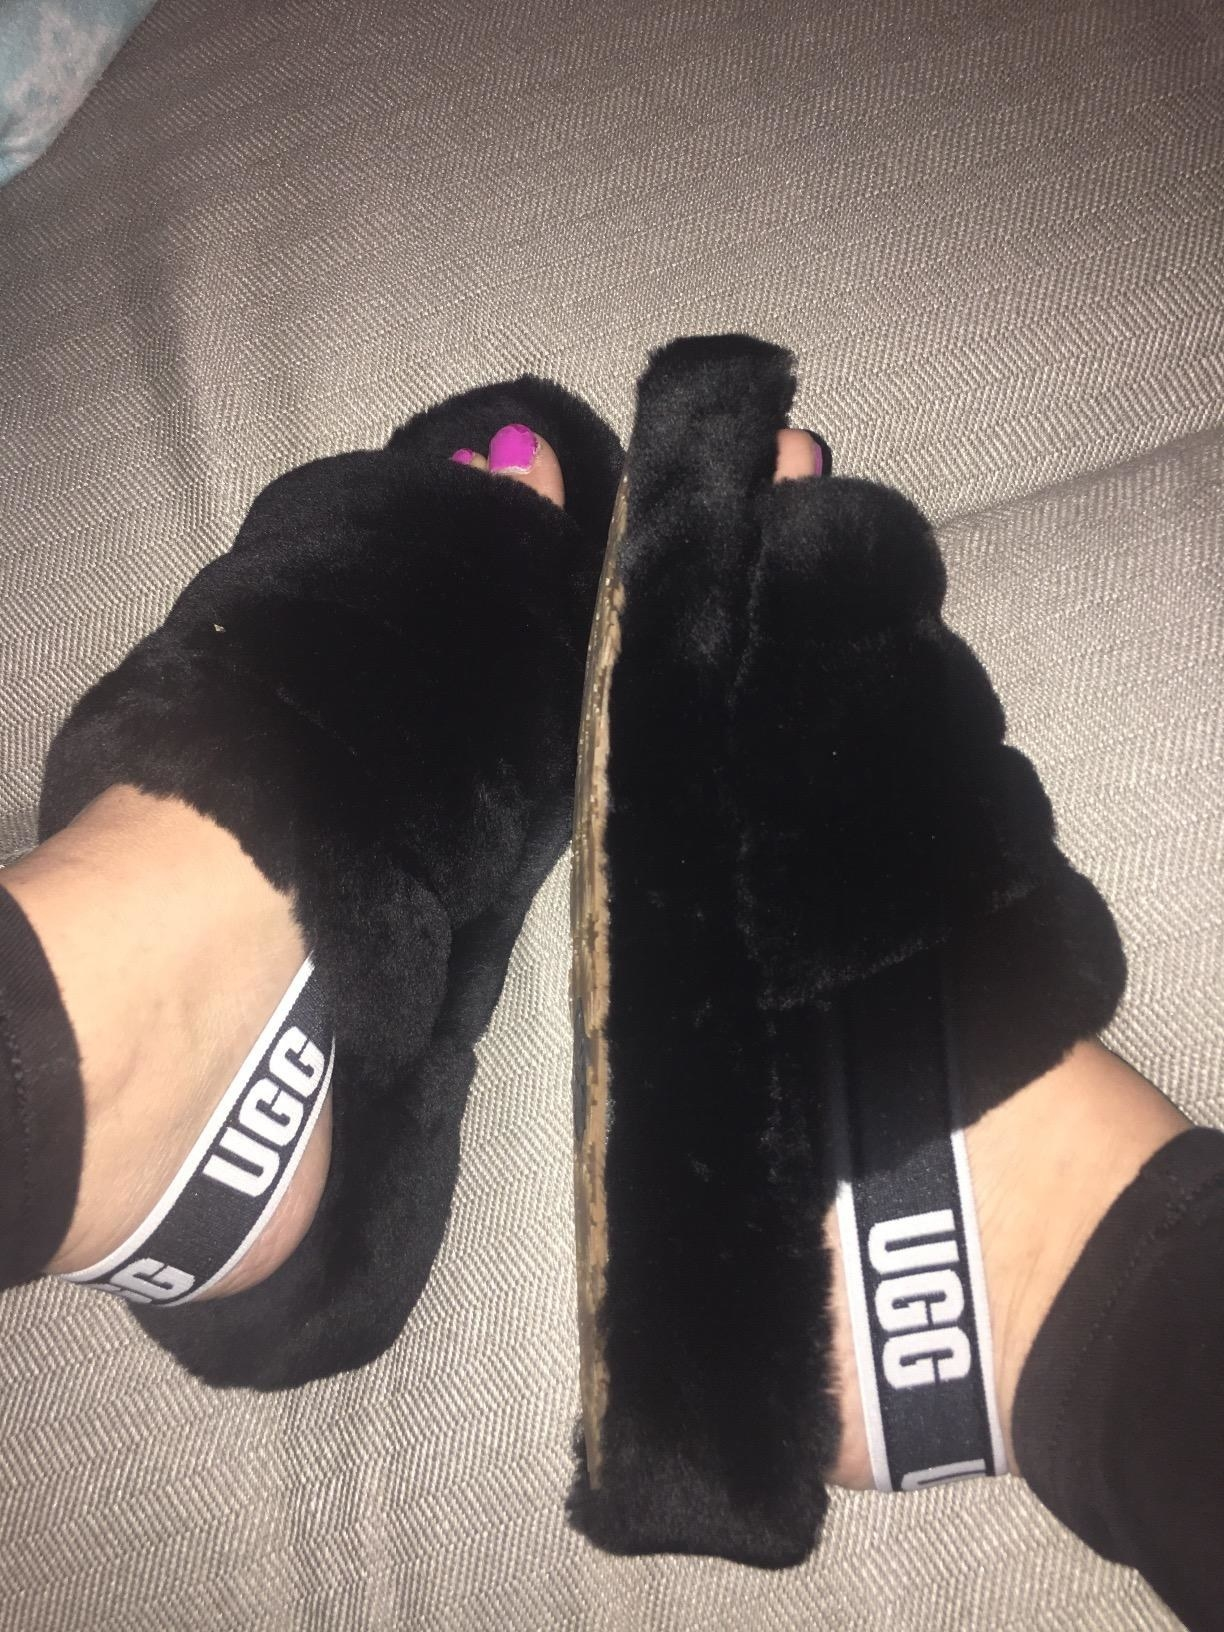 A reviewer wearing the slippers in black which are backless except for a back strap and are open-toed